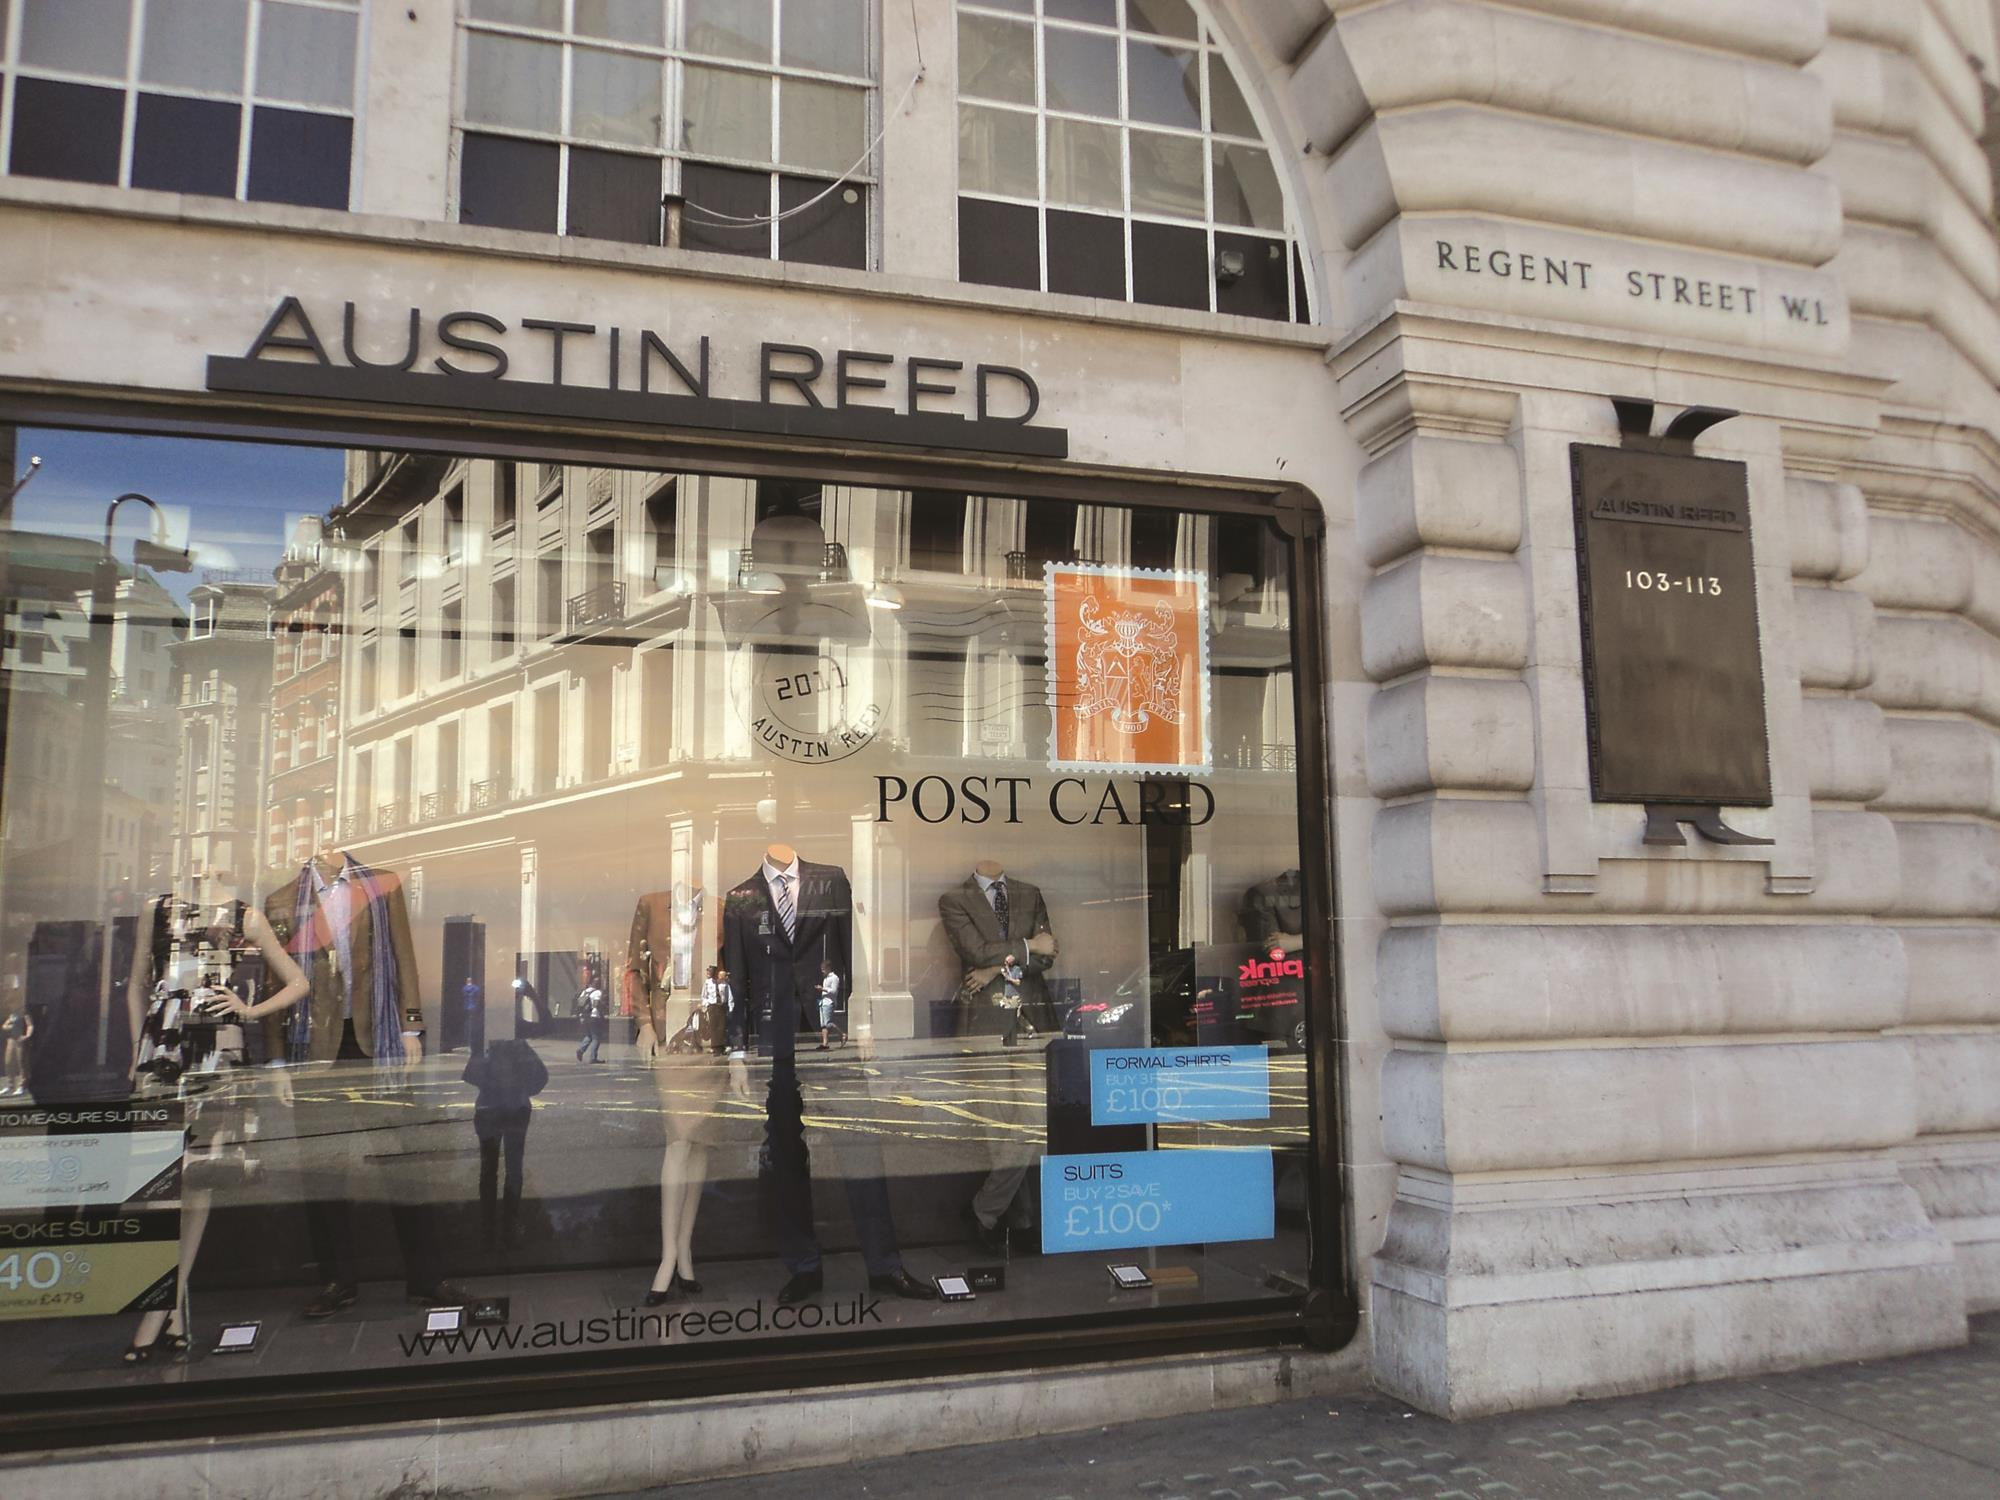 Austin Reed S Unsecured Lenders To Recover Just 2 Of Investment News Retail Week